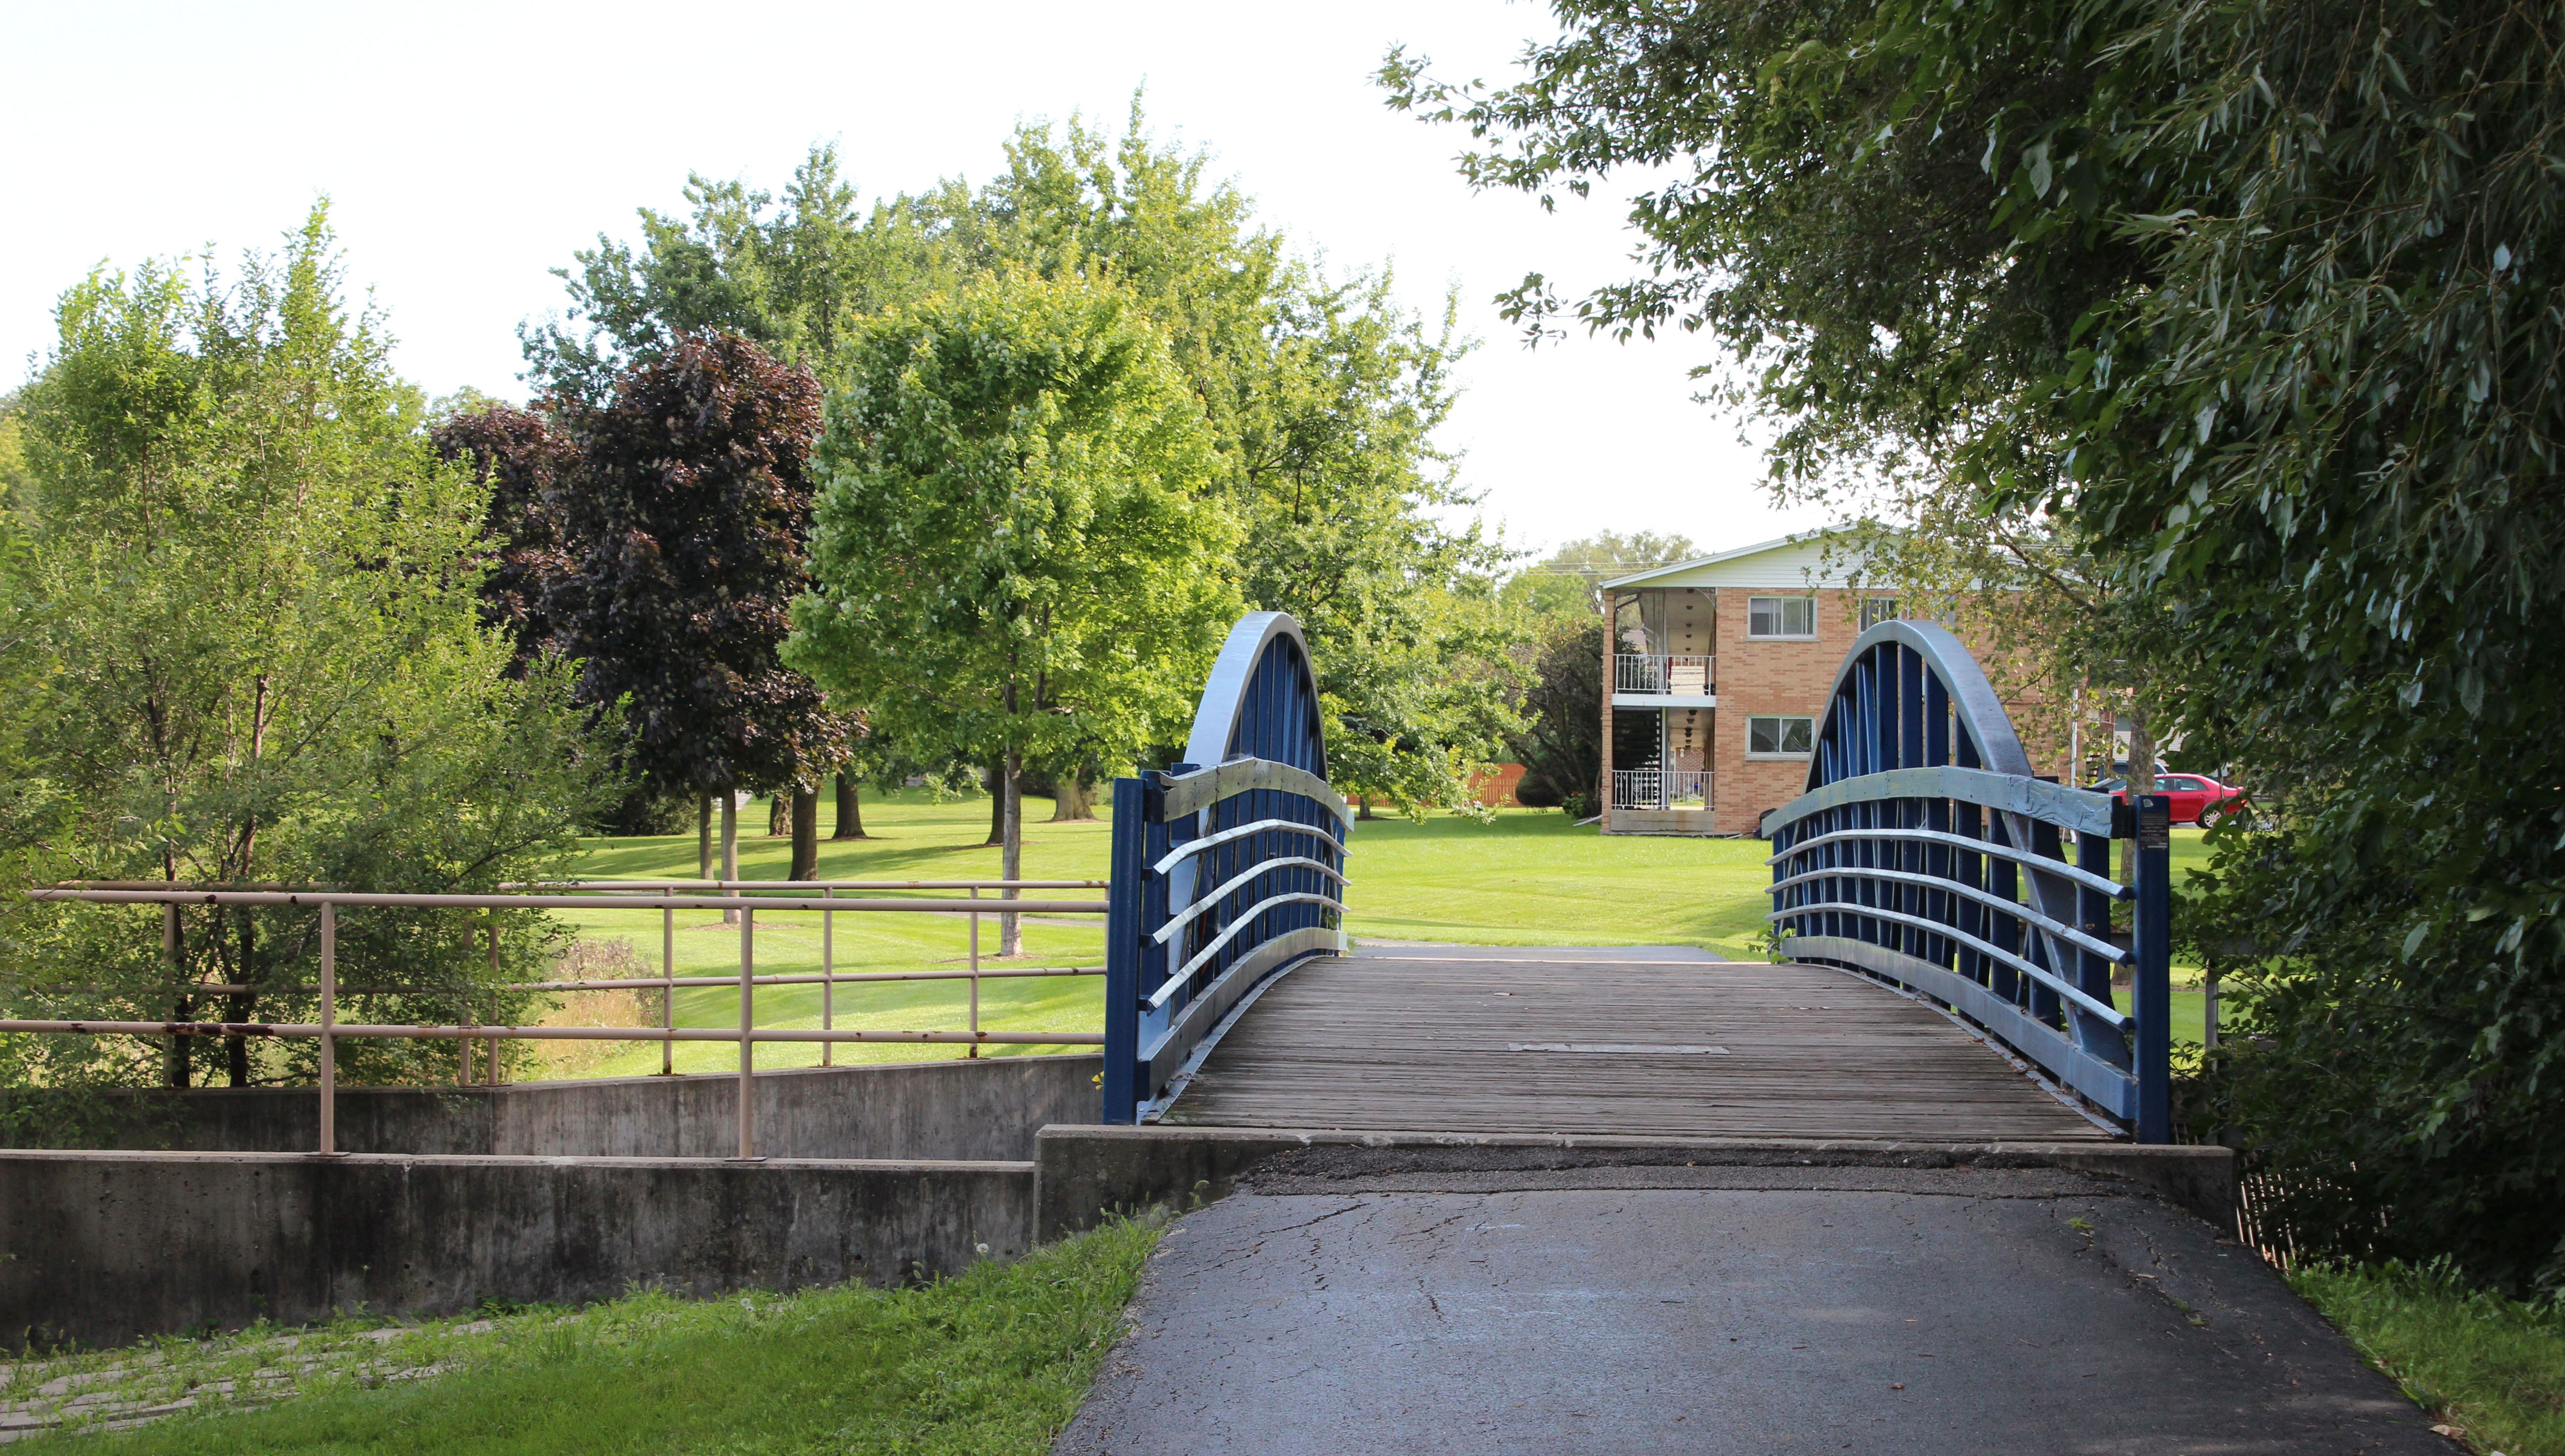 West bridge_1